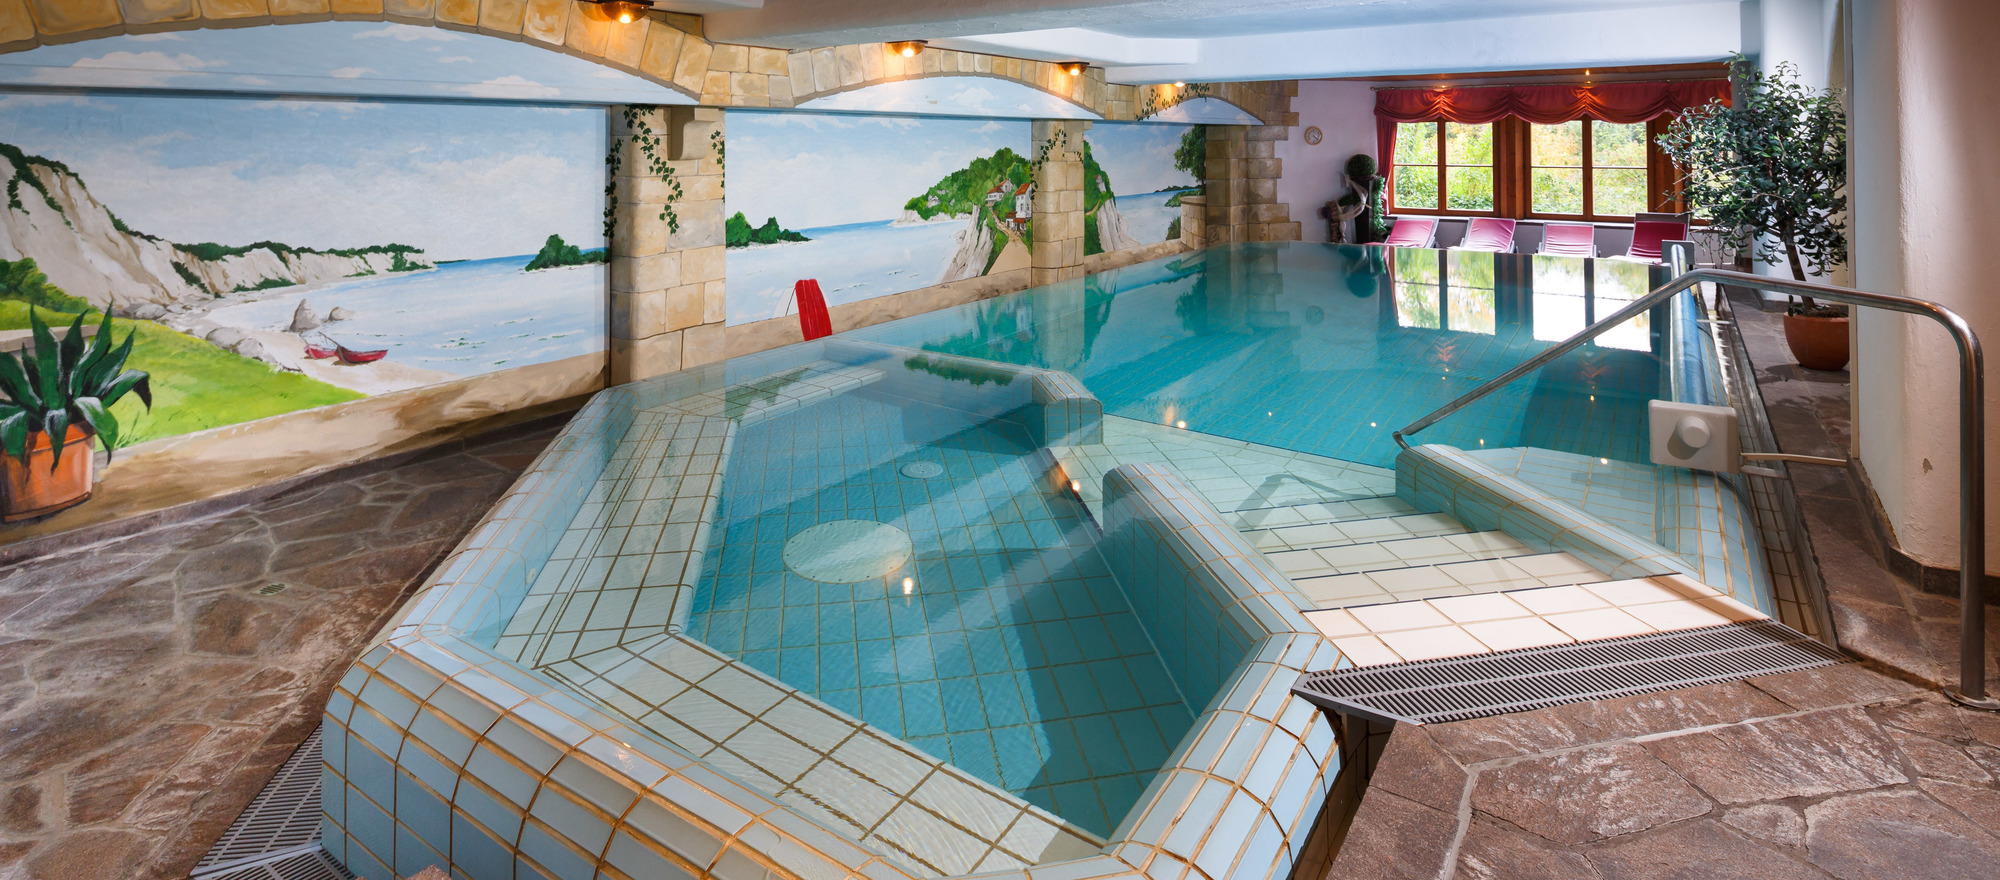 Swimming pool in Ringhotel Ferienhotel Nebelhornblick in Oberstdorf, 4 -star hotel in the Allgaeu